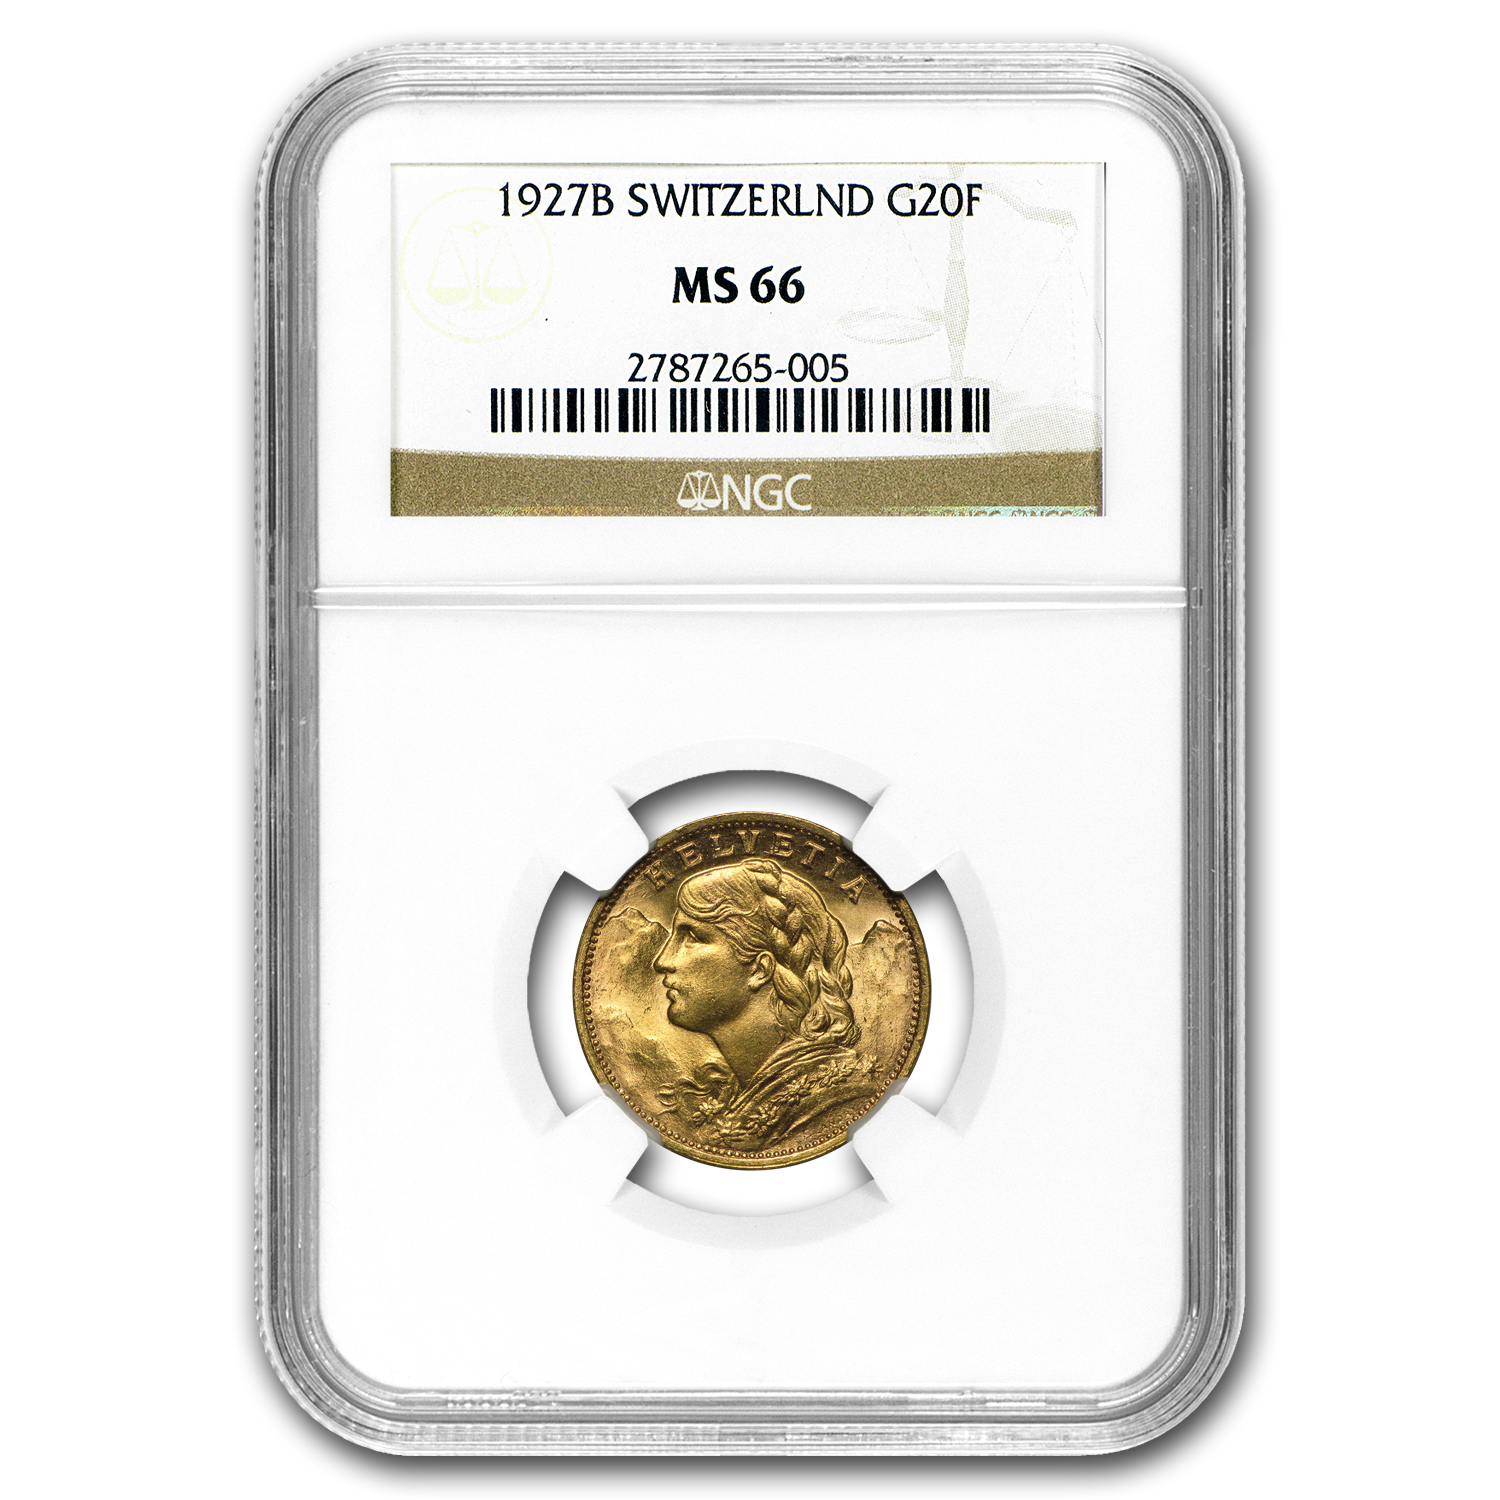 1901-1935 Switzerland Gold 20 Francs MS-66 NGC (Random)